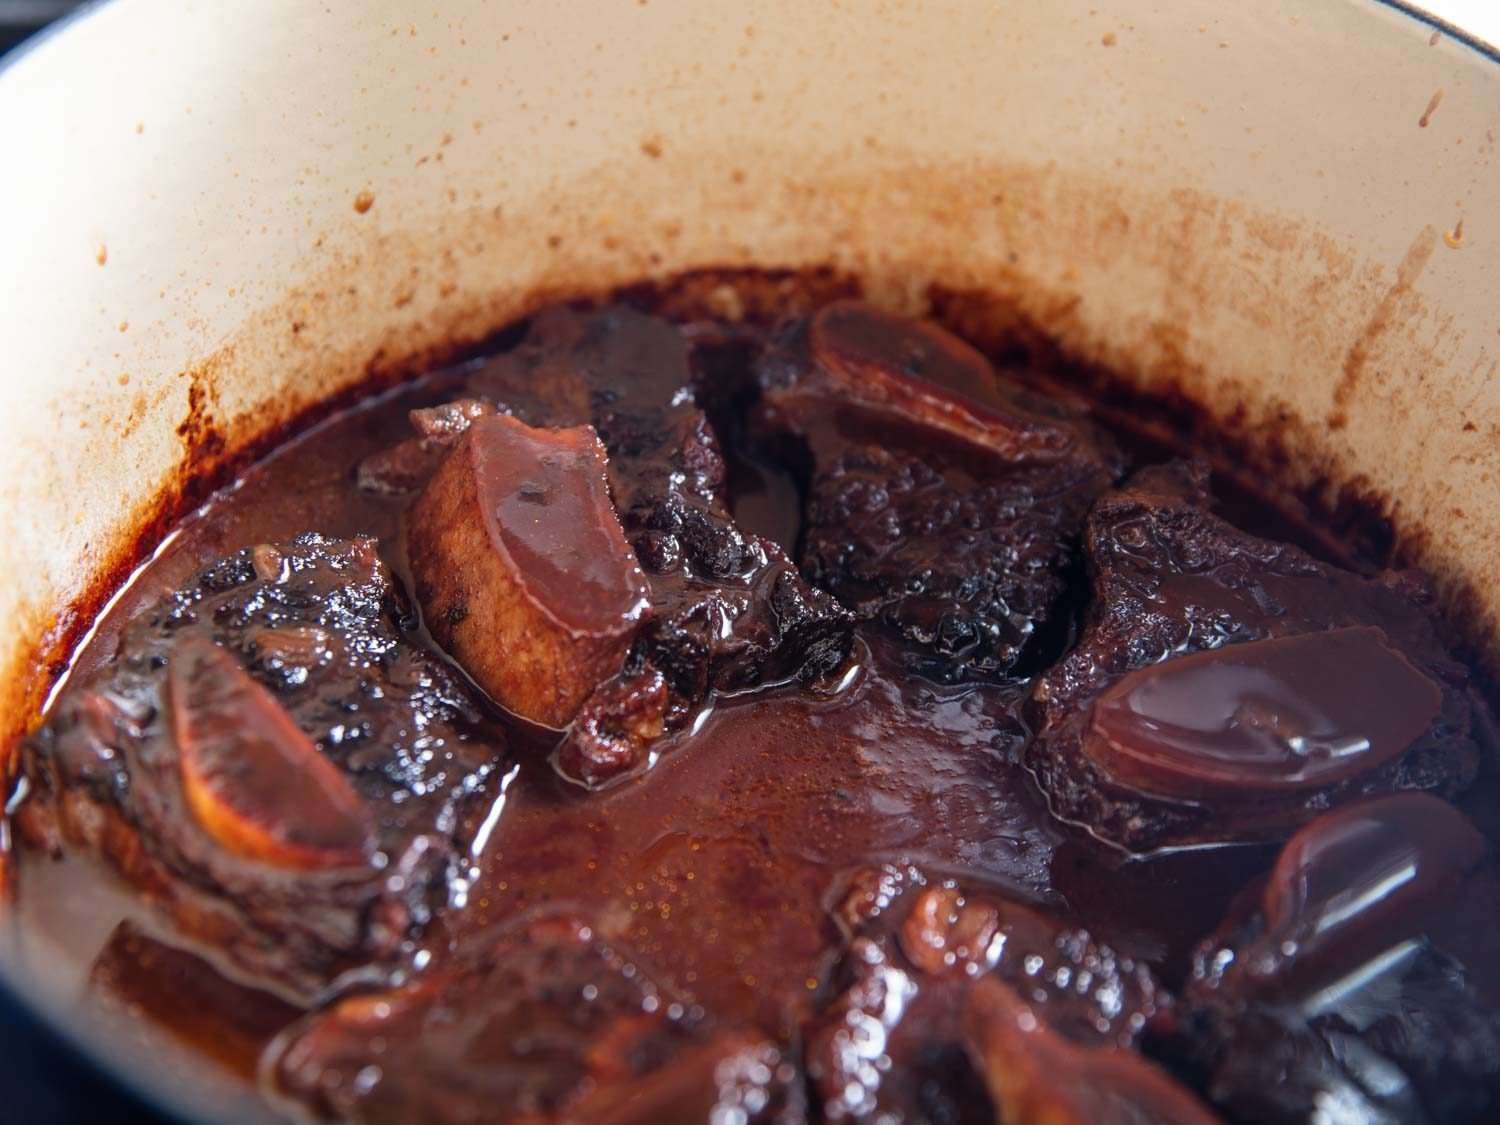 Braised beef short ribs in a Dutch oven with the finished red wine sauce